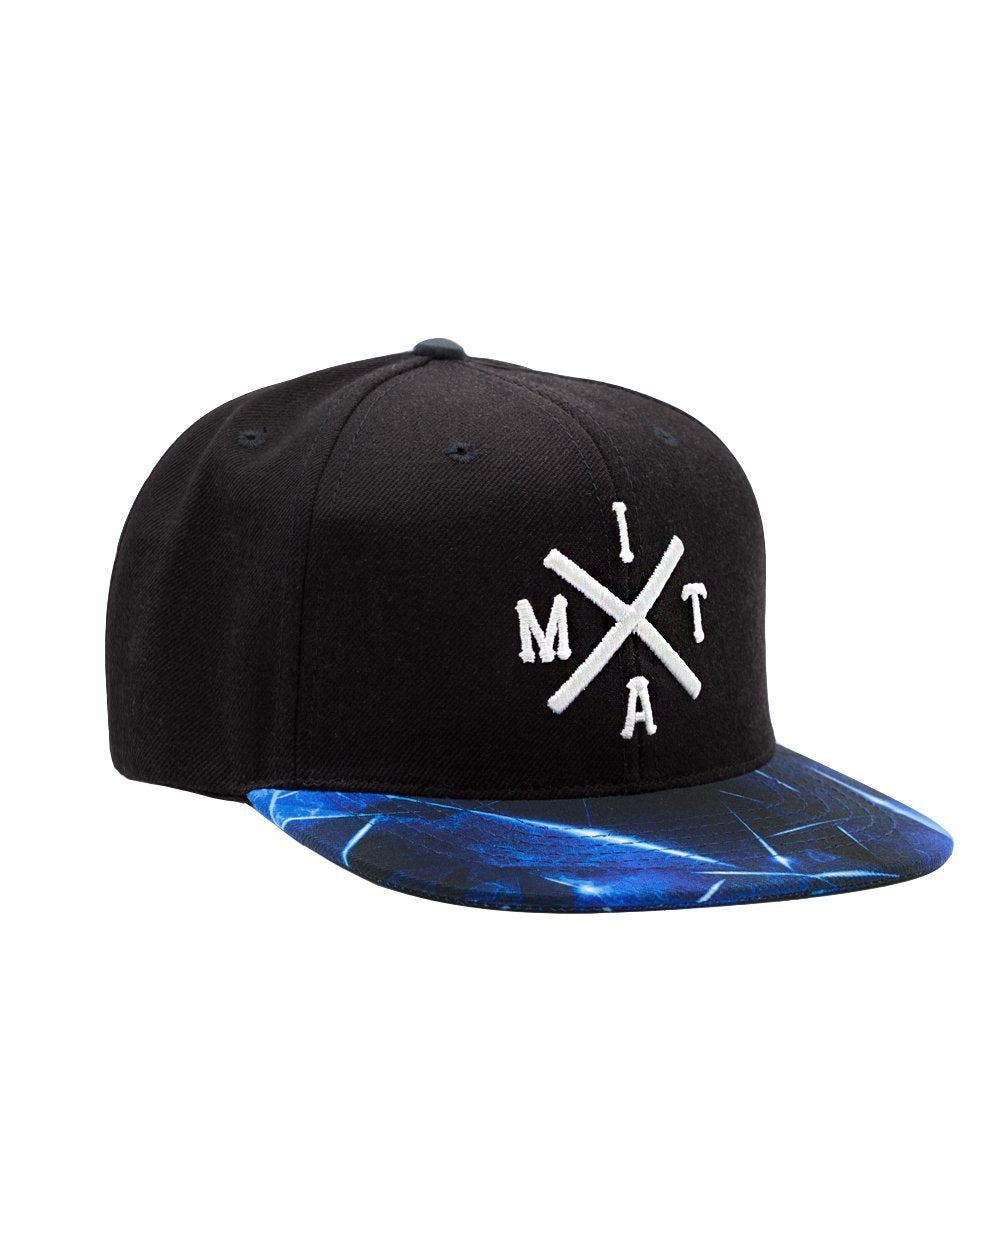 80bf8bd1c69 Cataclysmic Snapback-Front  Cataclysmic Snapback-Side ...